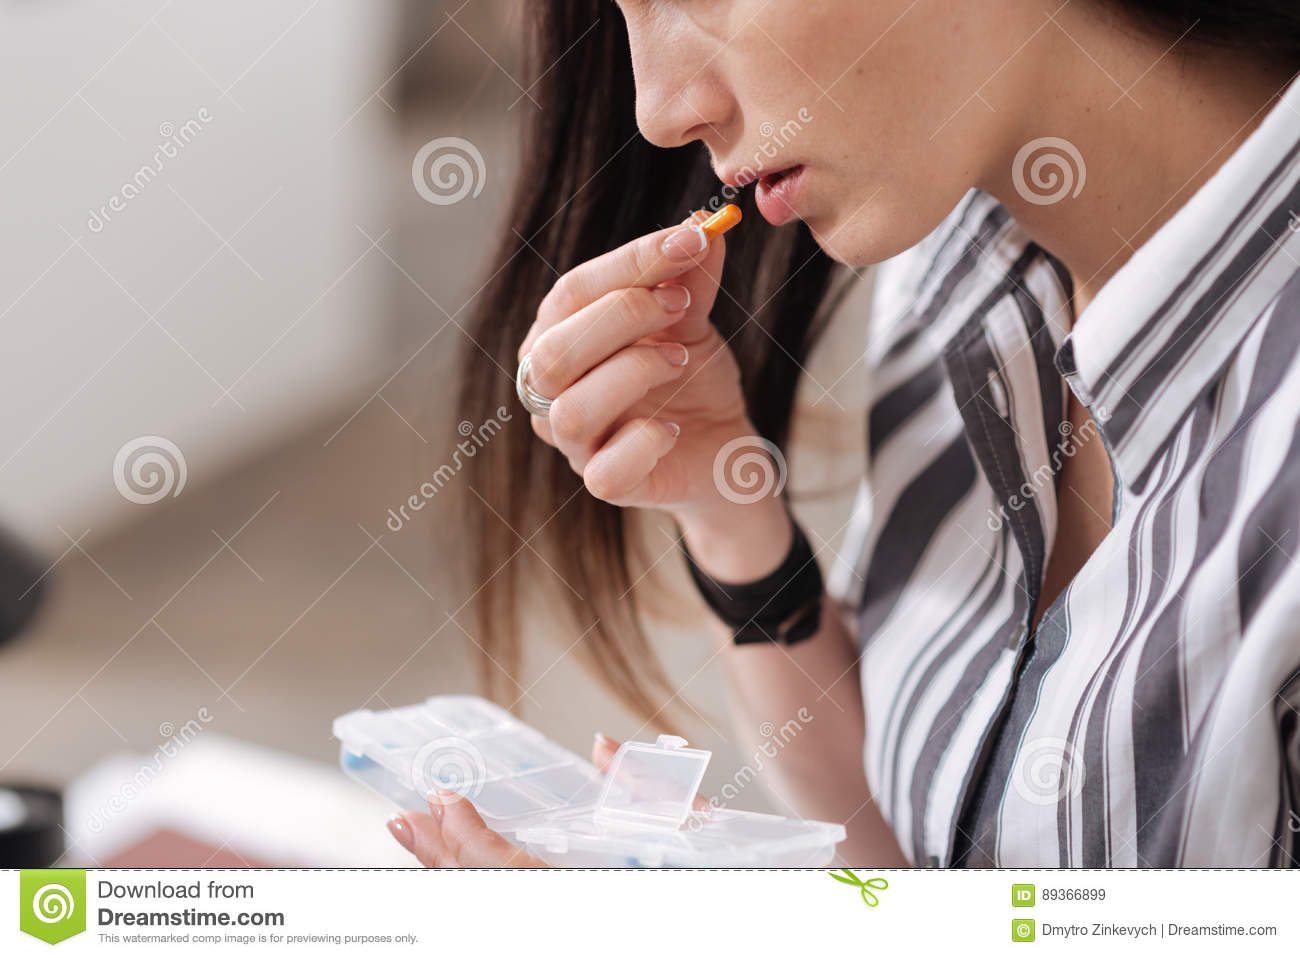 P O Of Office Worker That Wearinged Shirt Rising Right Hand With Orange Tablet To Mouth While Sitting In Semi Position